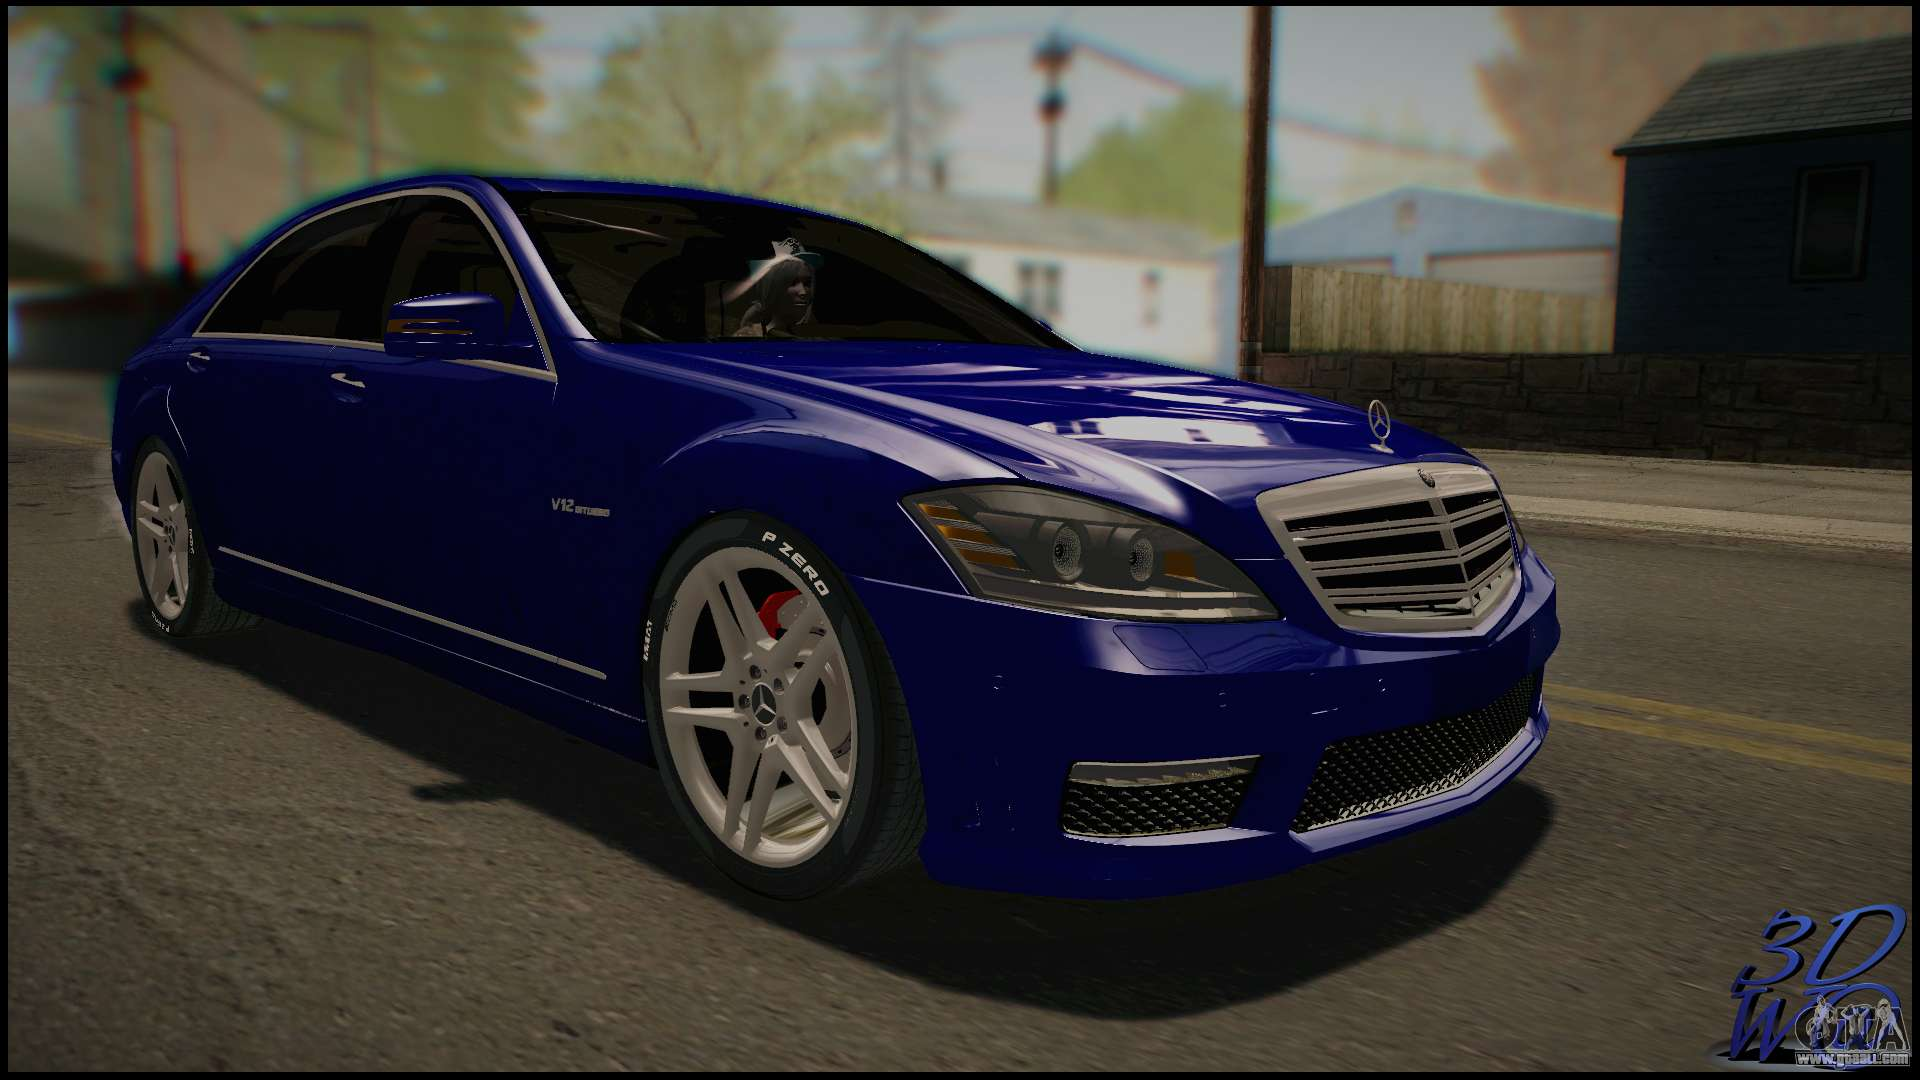 Mercedes benz s65 amg 2012 road version for gta san andreas for Mercedes benz amg s65